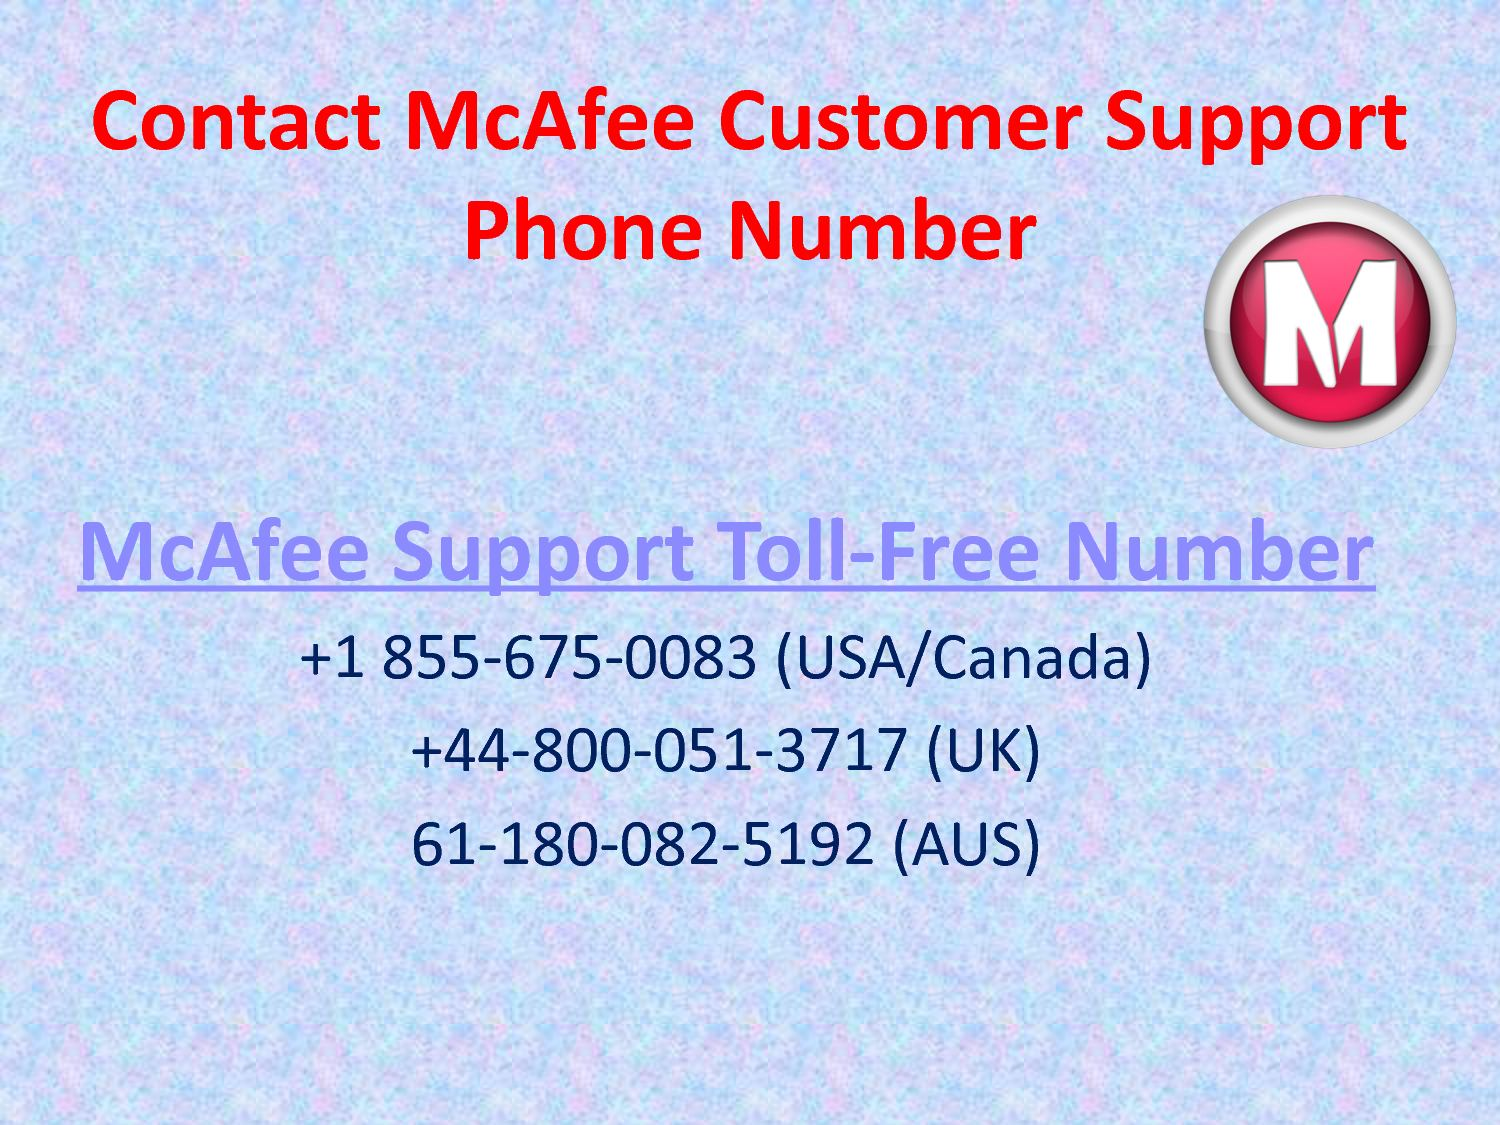 Calaméo - Contact McAfee Live Chat Support Number+1 855-675-0083